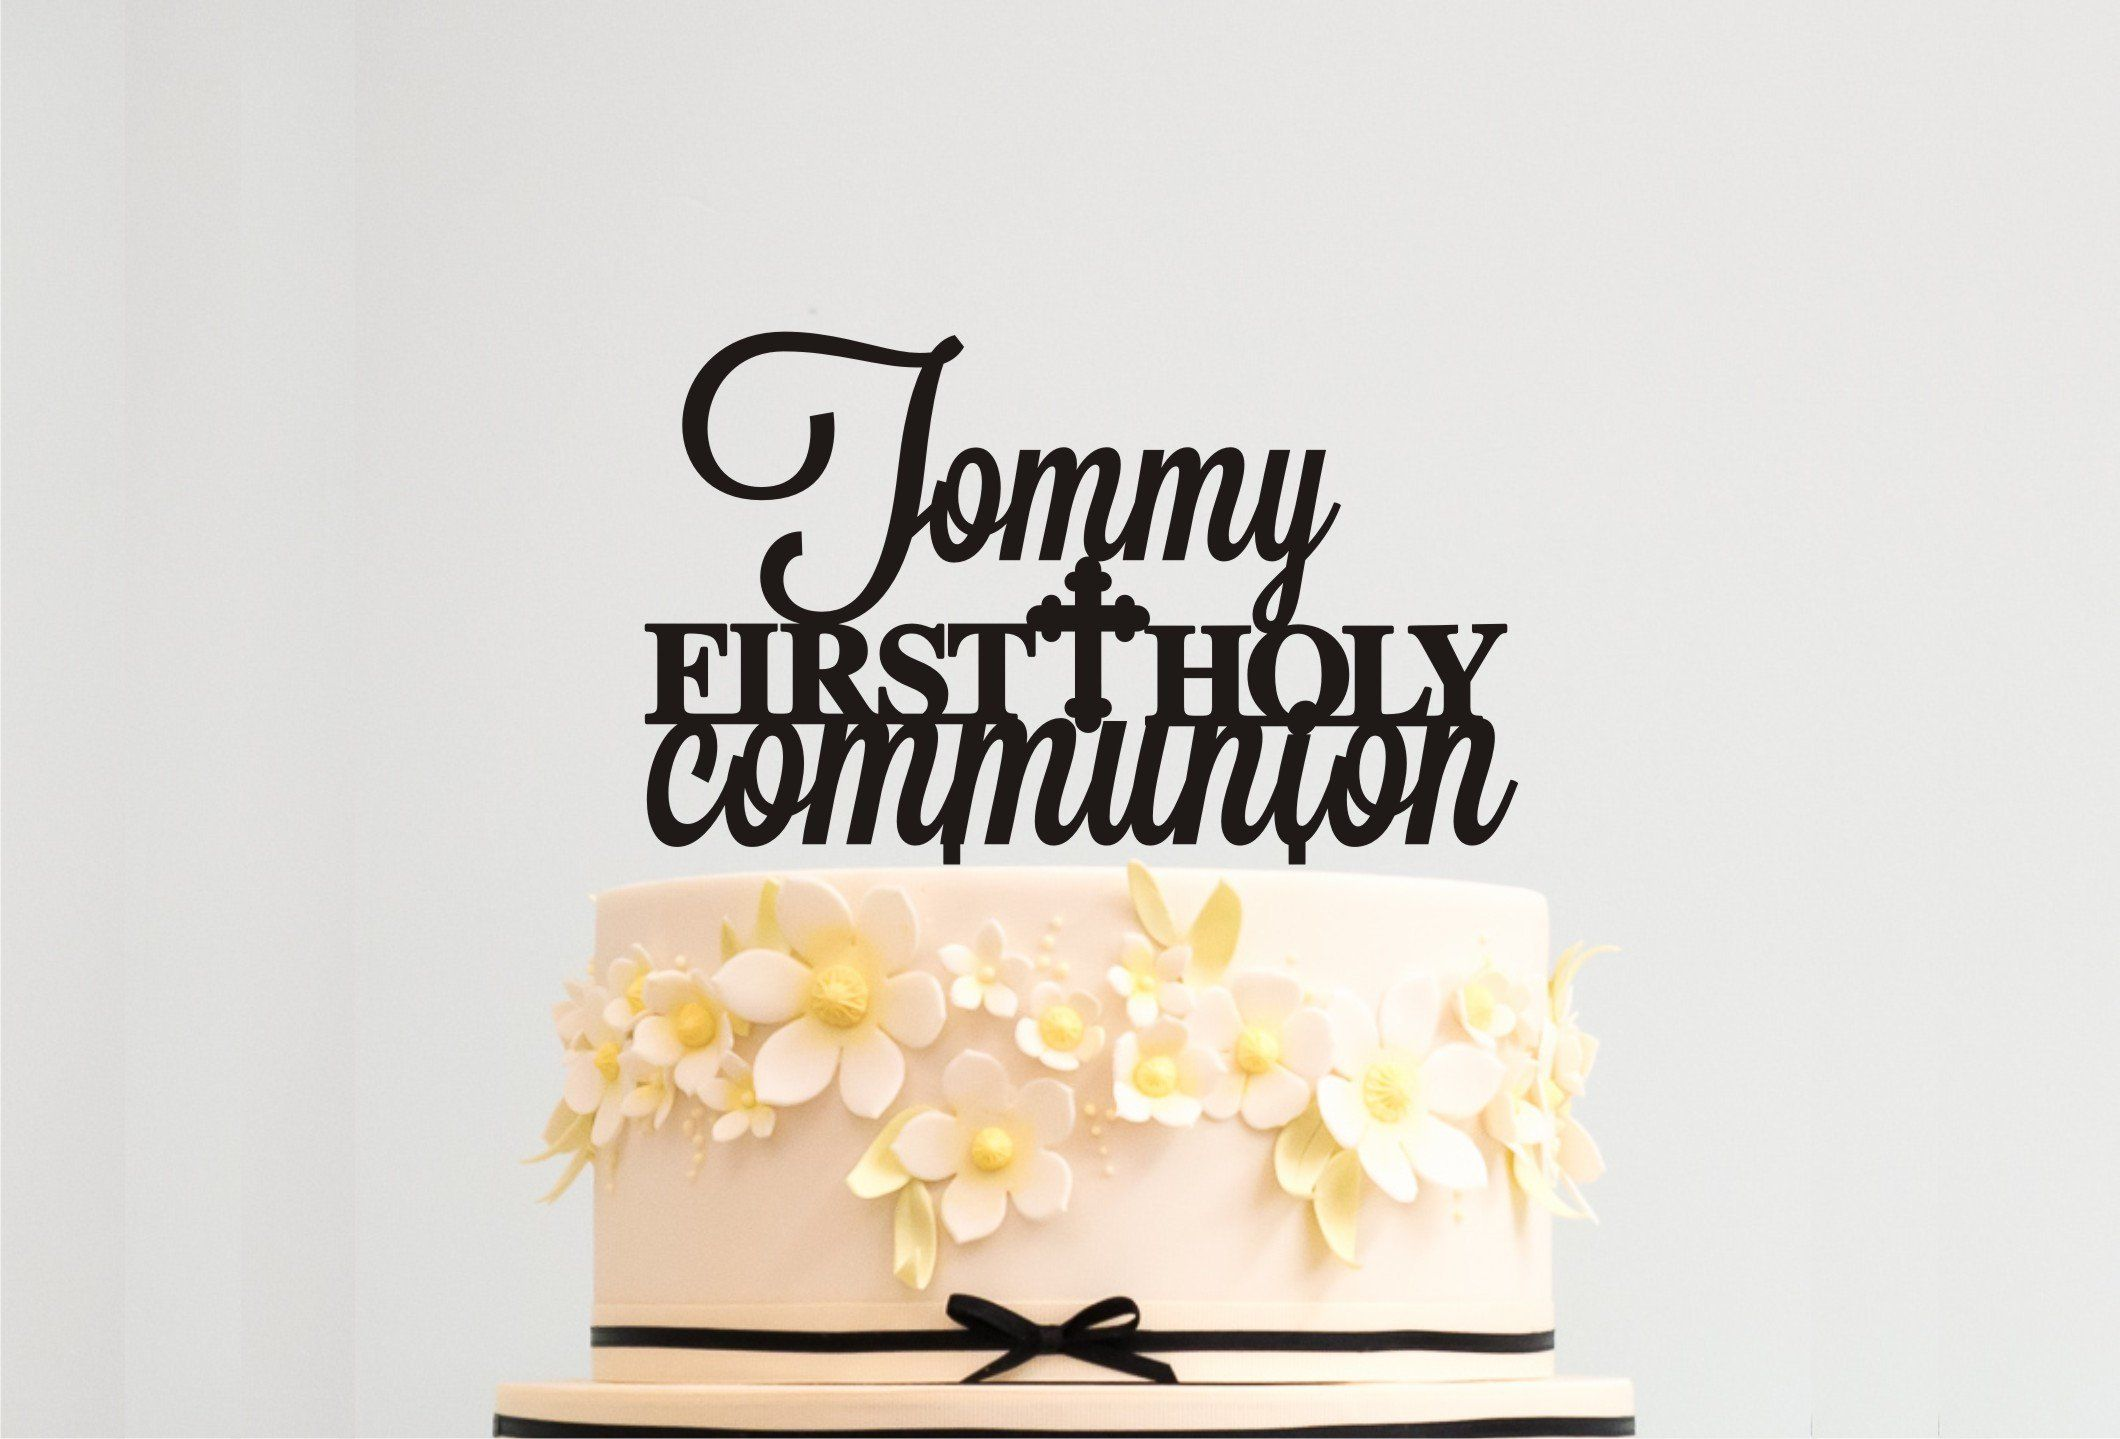 1st Holy Communion Cake Topper Personalised Custom Firts Cross Any Name Boy Girl